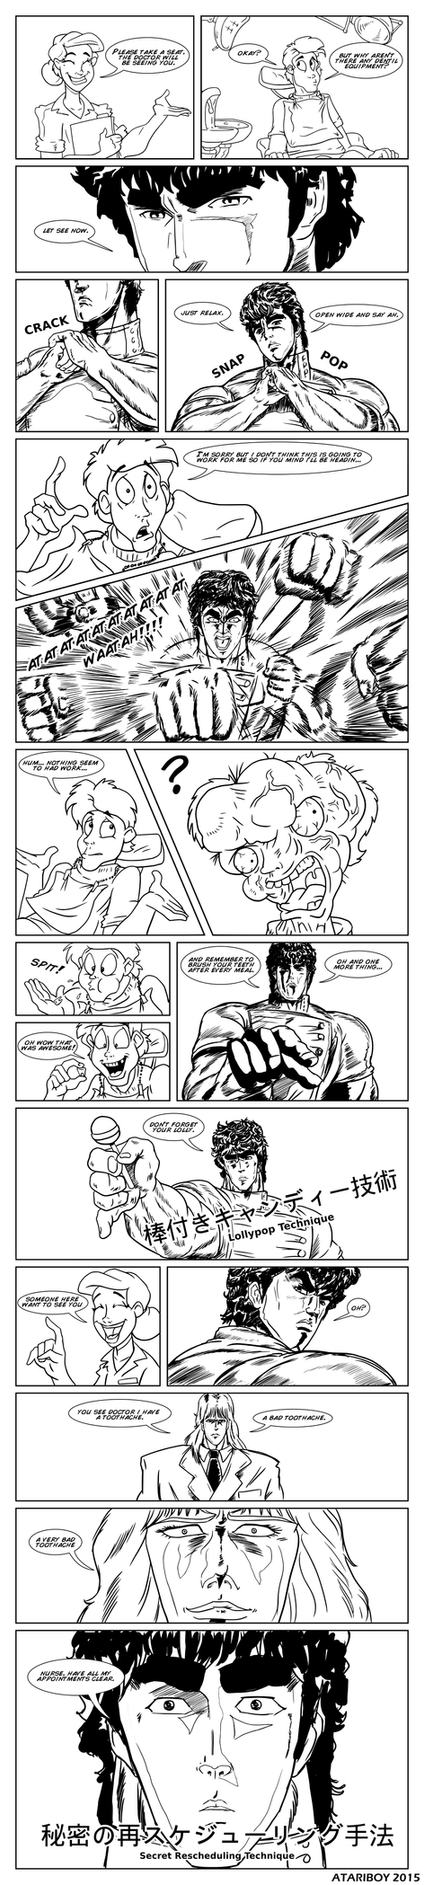 Fist Of The North Star DDS. by Atariboy2600